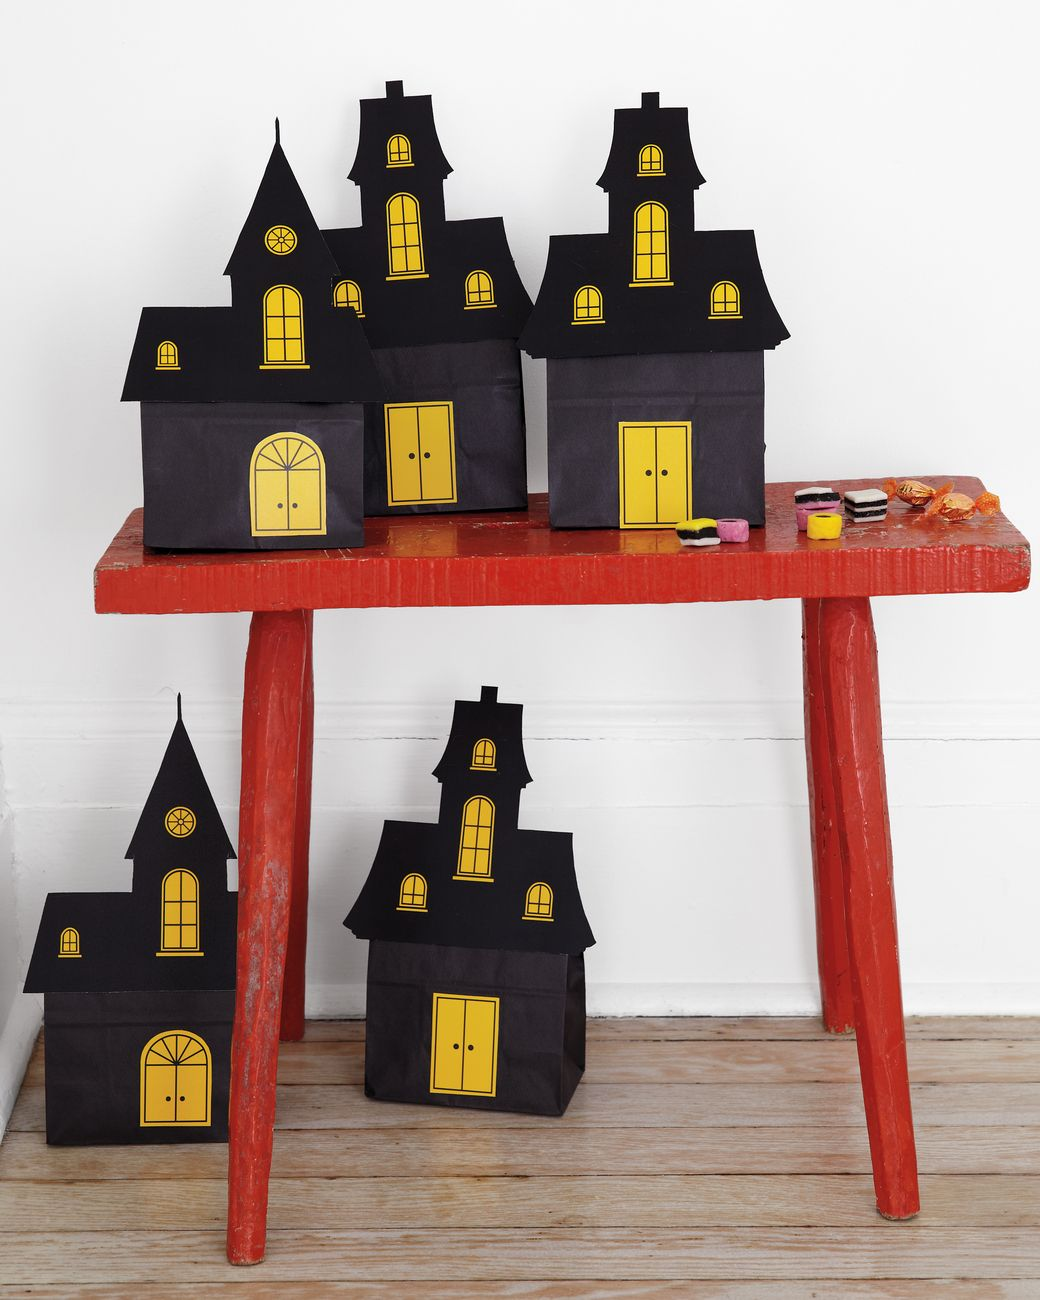 Homemade halloween indoor decorations - Goody Bags Can Do Double Duty As Party Decor When You Update Black Bags With Our